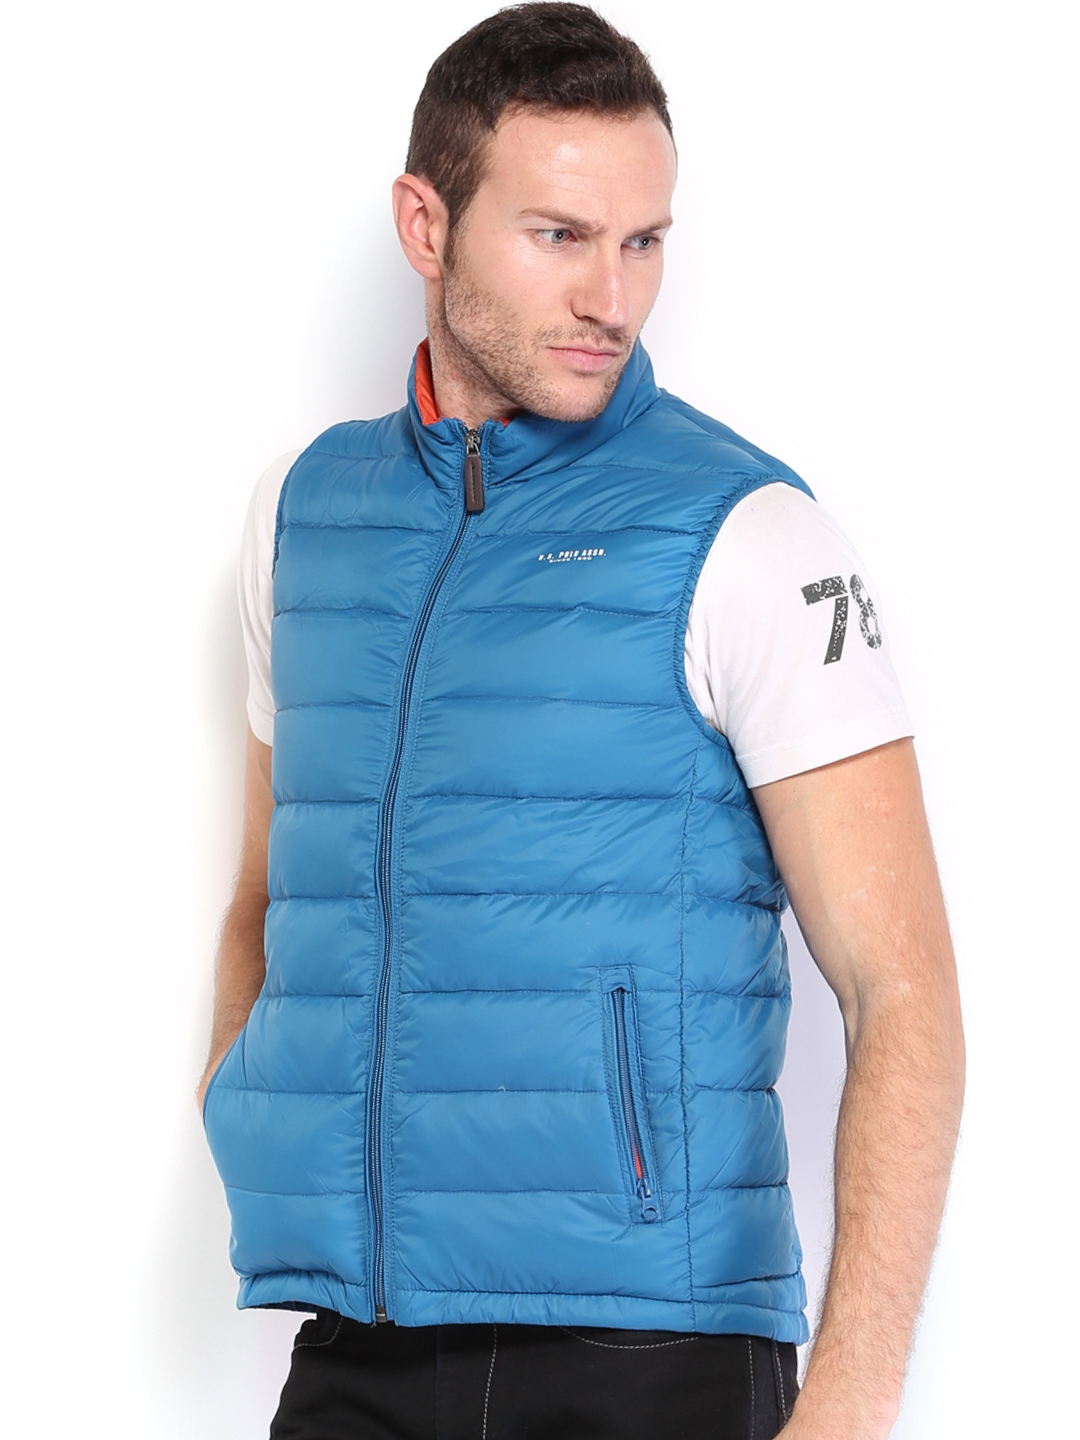 2ee7871b56 Buy U.S. Polo Assn. Men Blue Sleeveless Padded Jacket - Jackets for ...